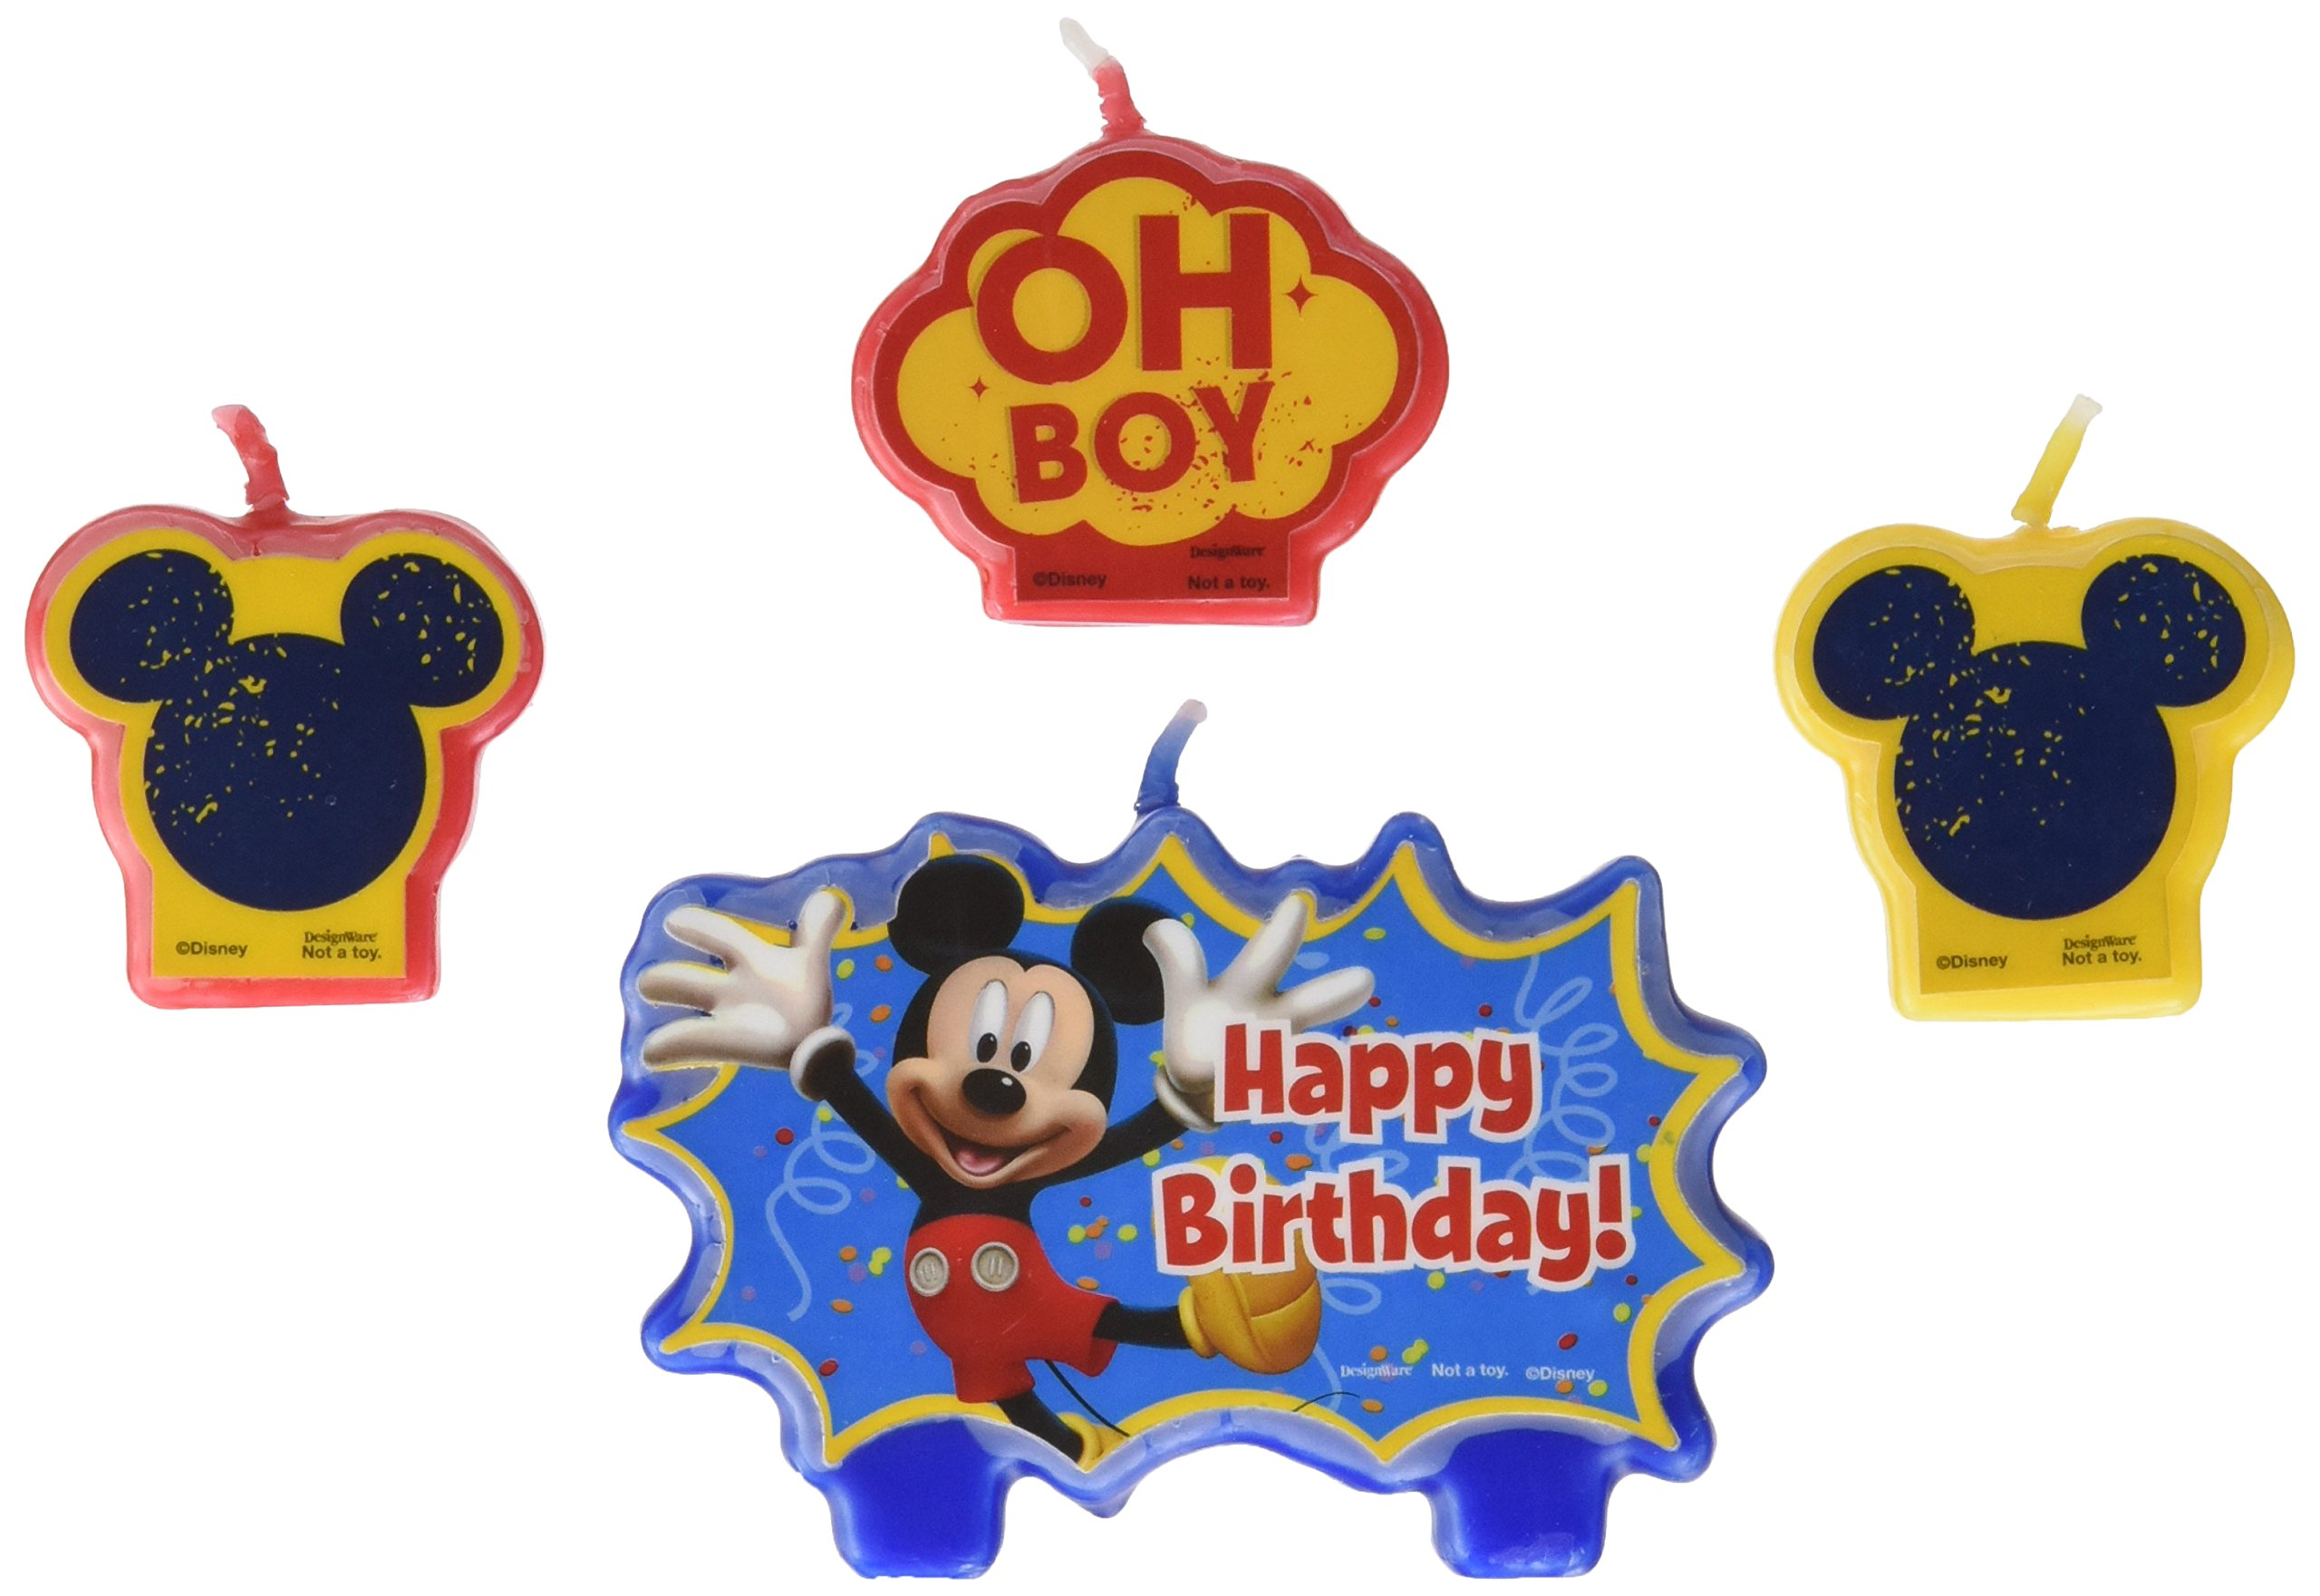 Amscan Party Time Disney Mickey Mouse Mini Character Birthday Candle Set, Pack of 4, Multi Wax Childrens-Cake-Decorations, Multicolor /Wax, 1.25''